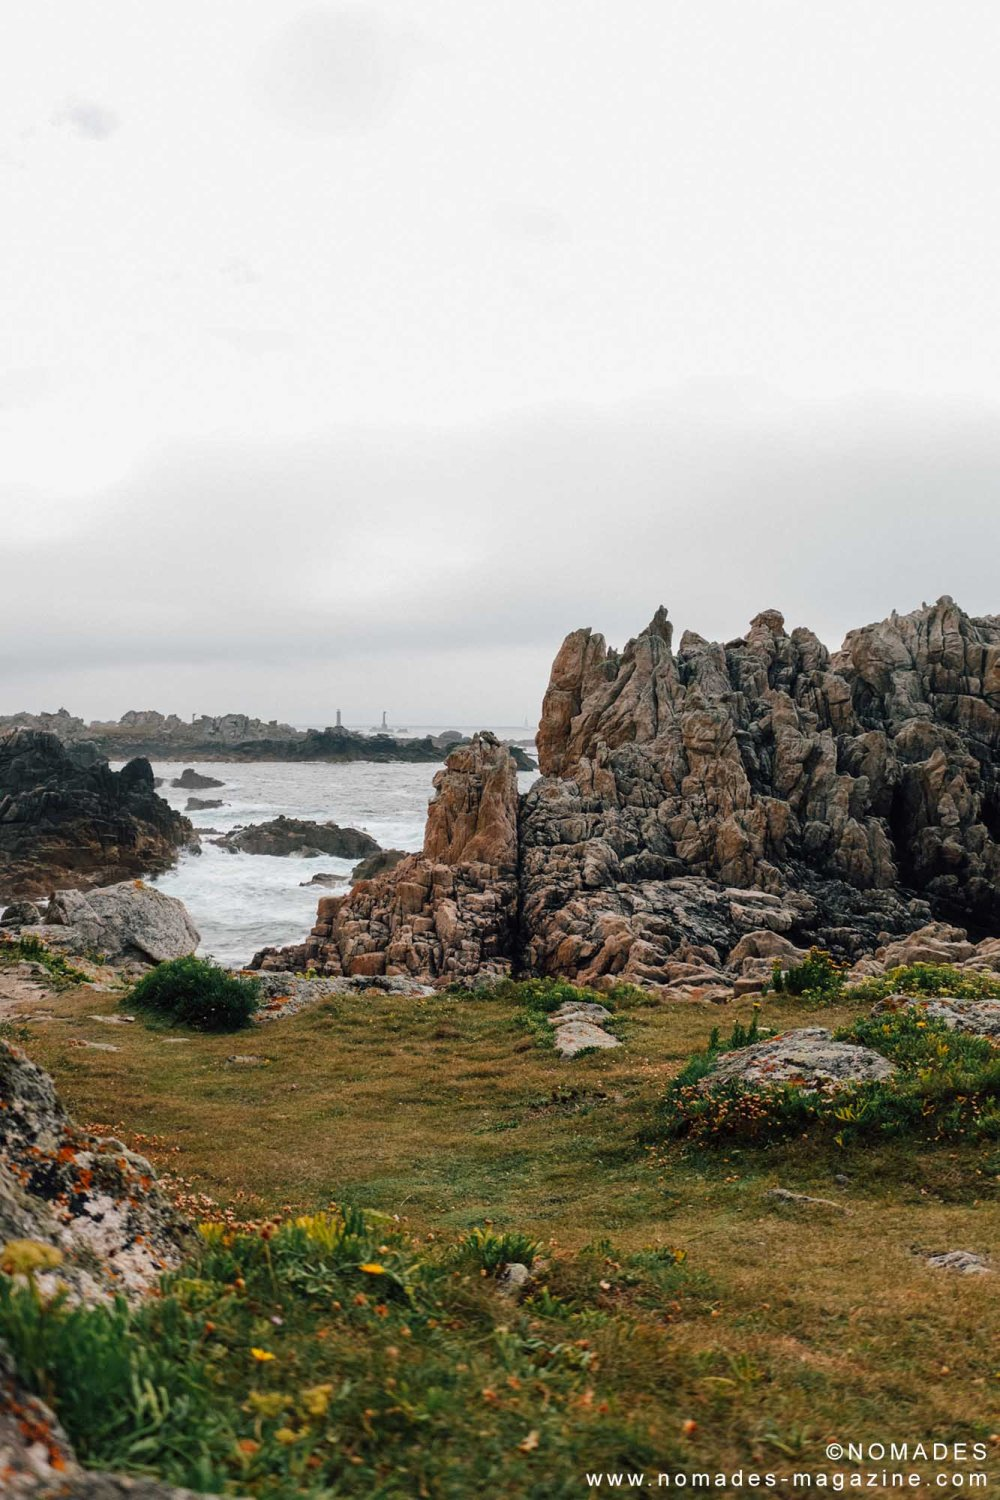 ouessant-by-nomades-3